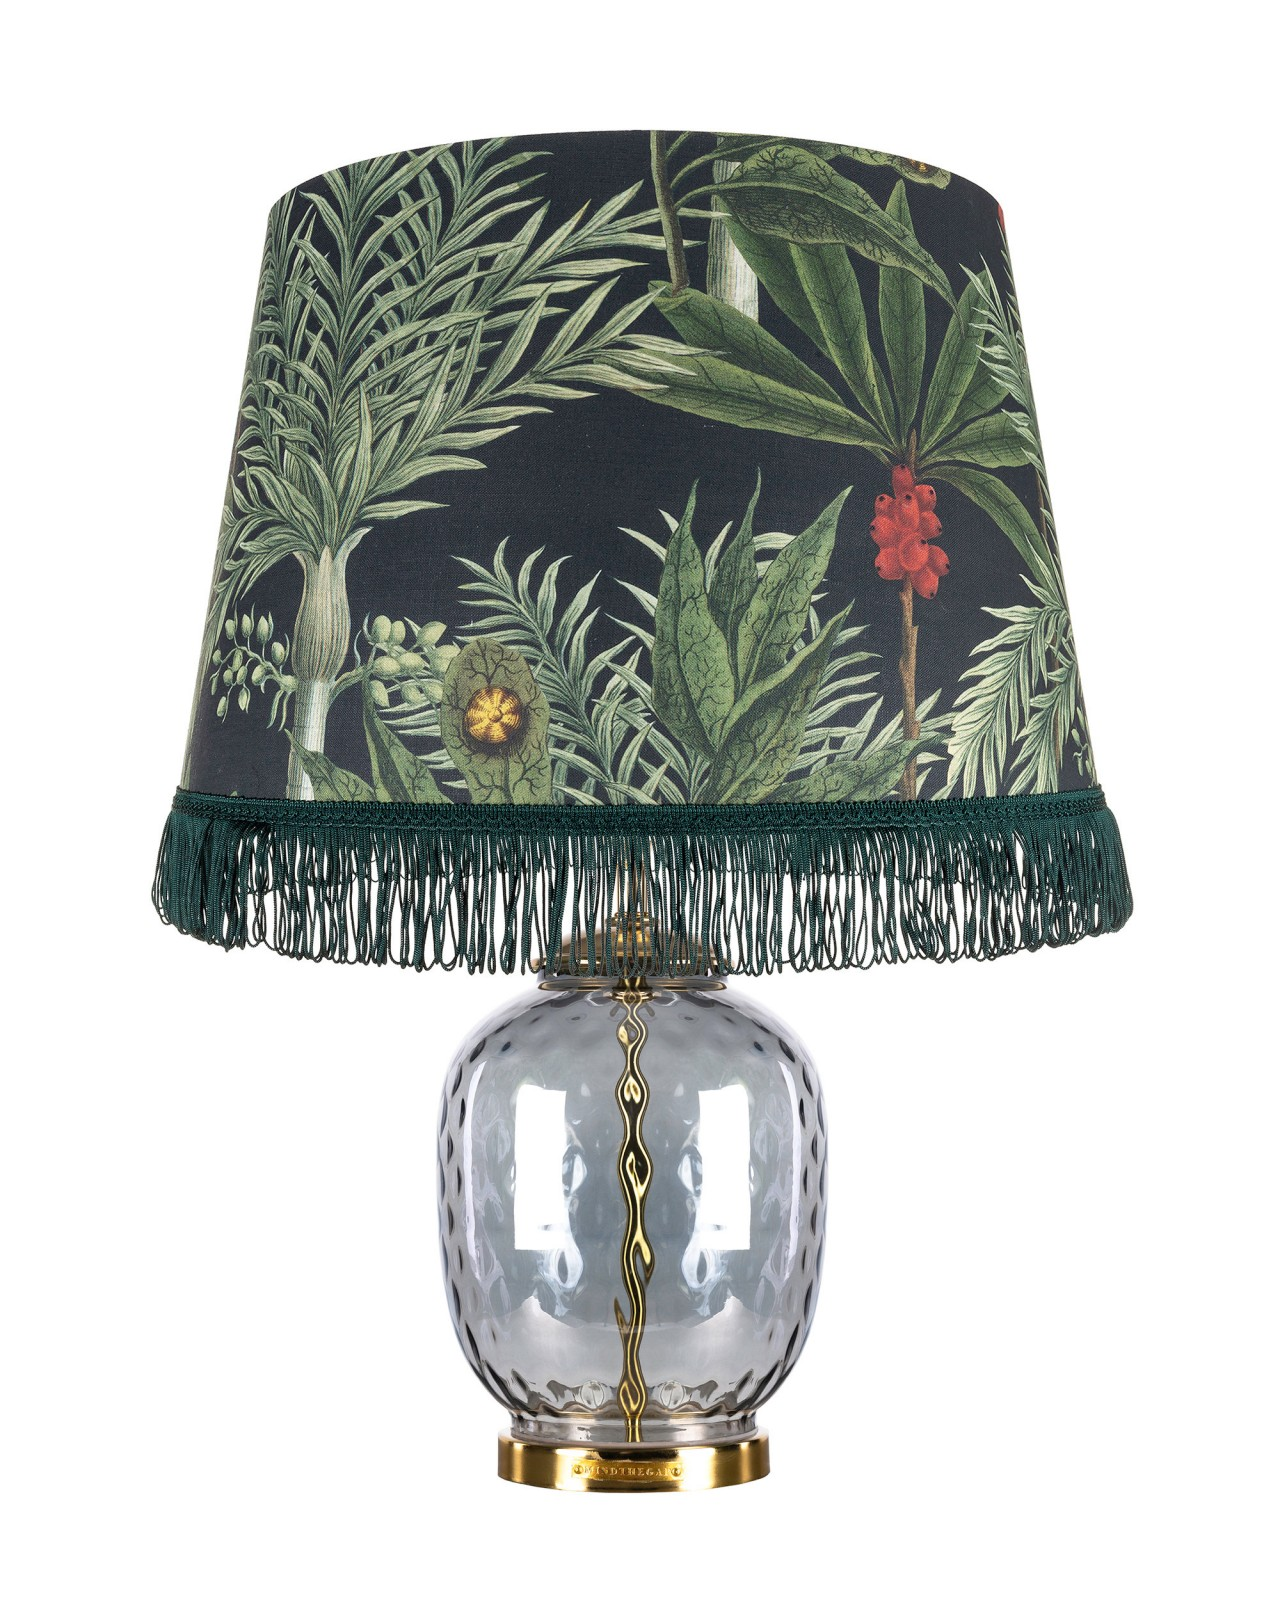 MADAGASCAR CHELSEA Table Lamp